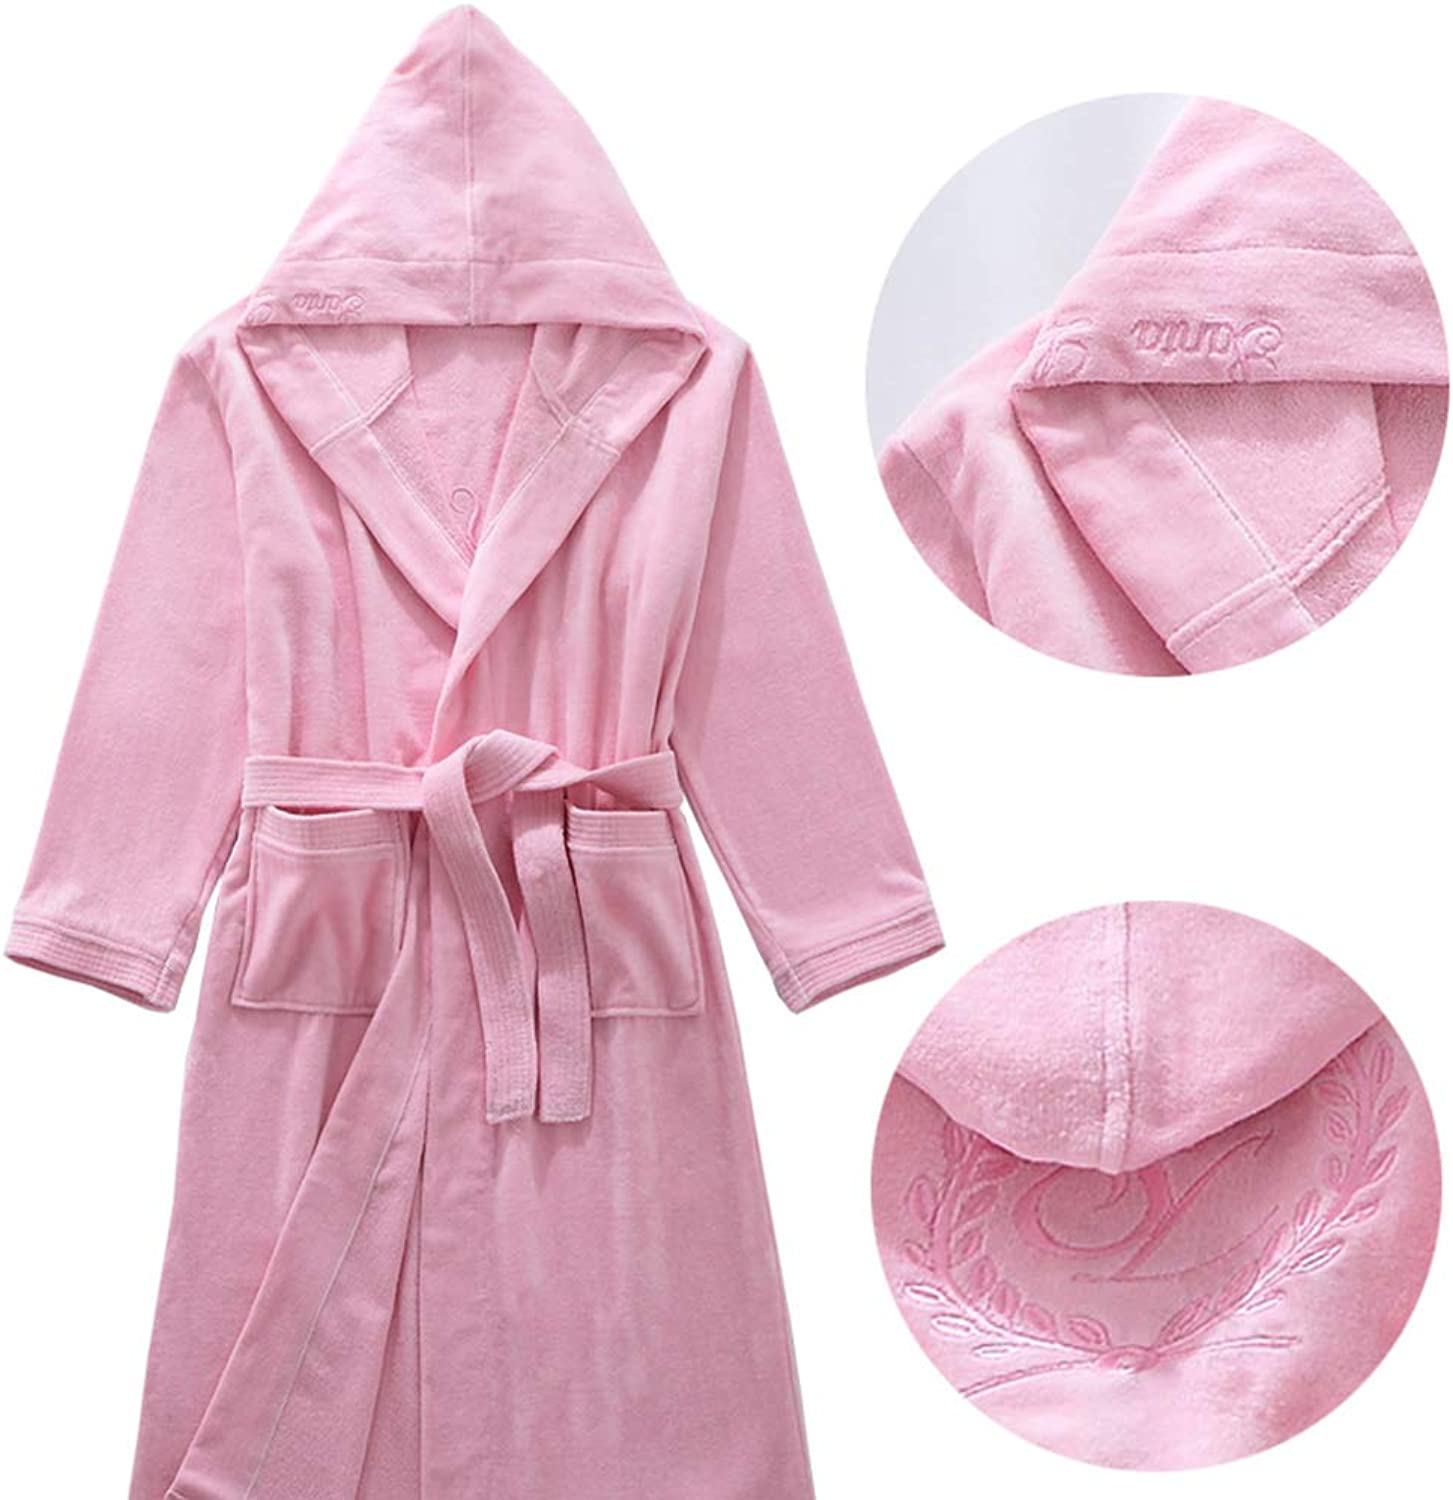 Bathrobes, Men and Women Winter Robe Cotton Toweling Bathrobe, Hotel Solid color Hooded Dressing Gown